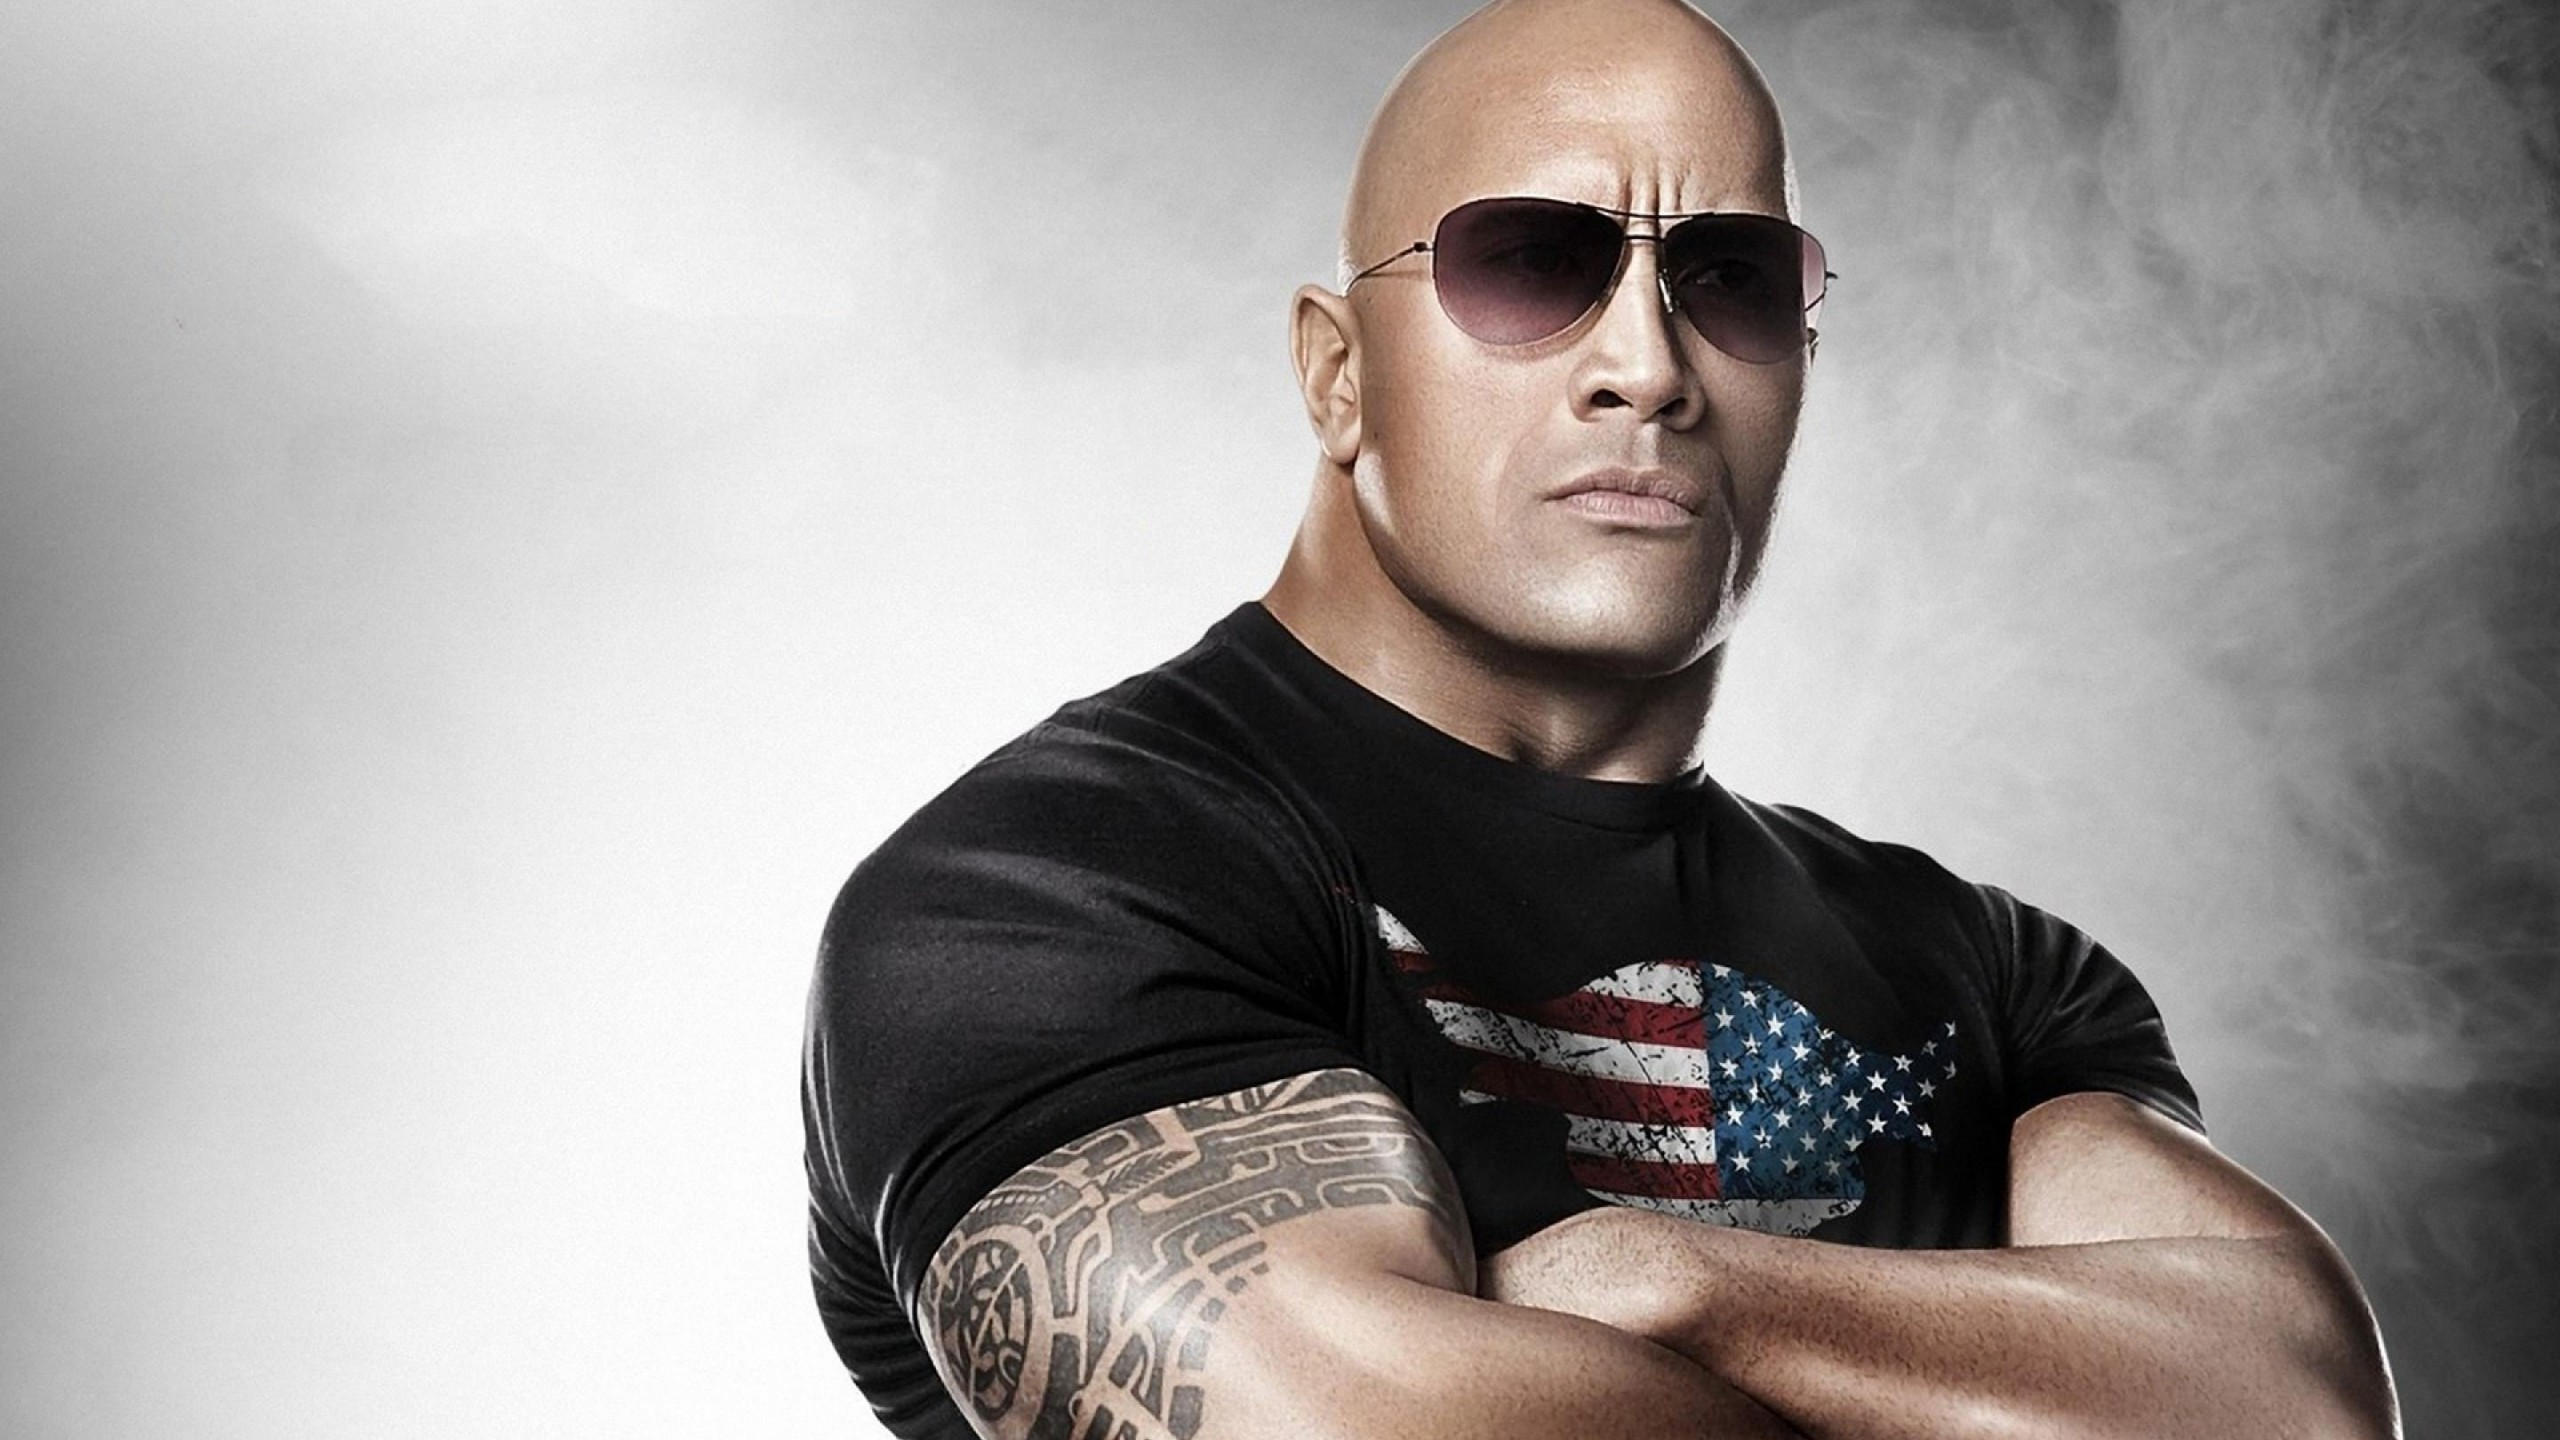 Dwayne Johnson The Rock Wallpaper for Desktop 2560x1440